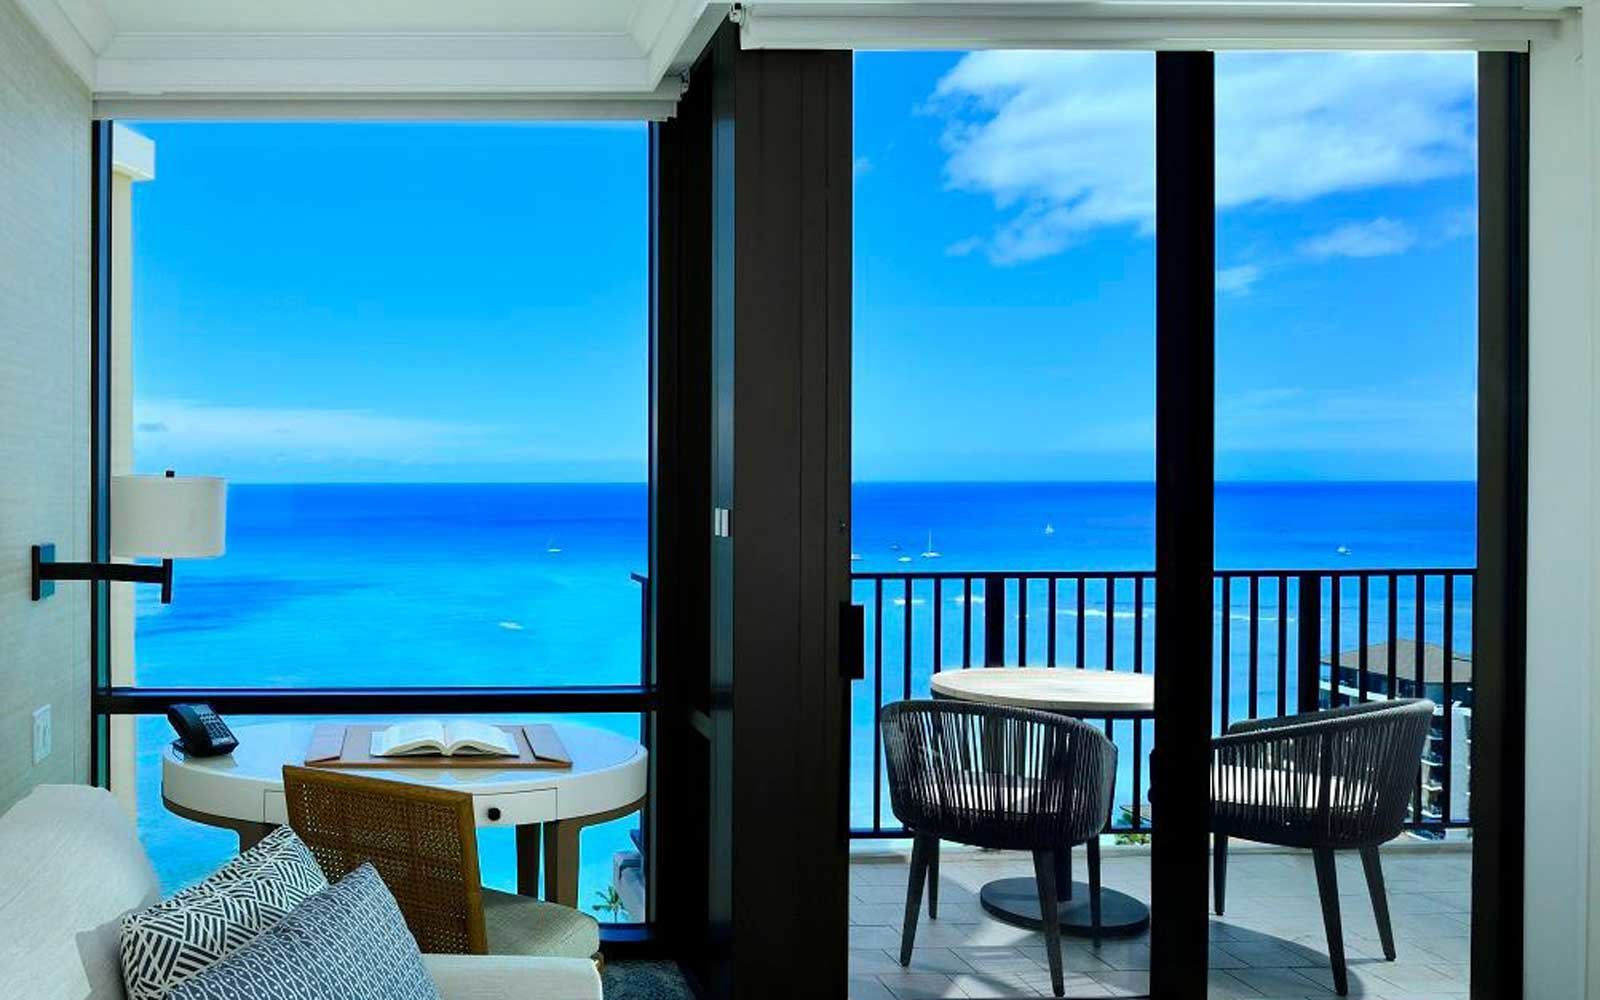 These are all the perks included in a stay at Halepuna Waikiki, Honolulu's newest hotel